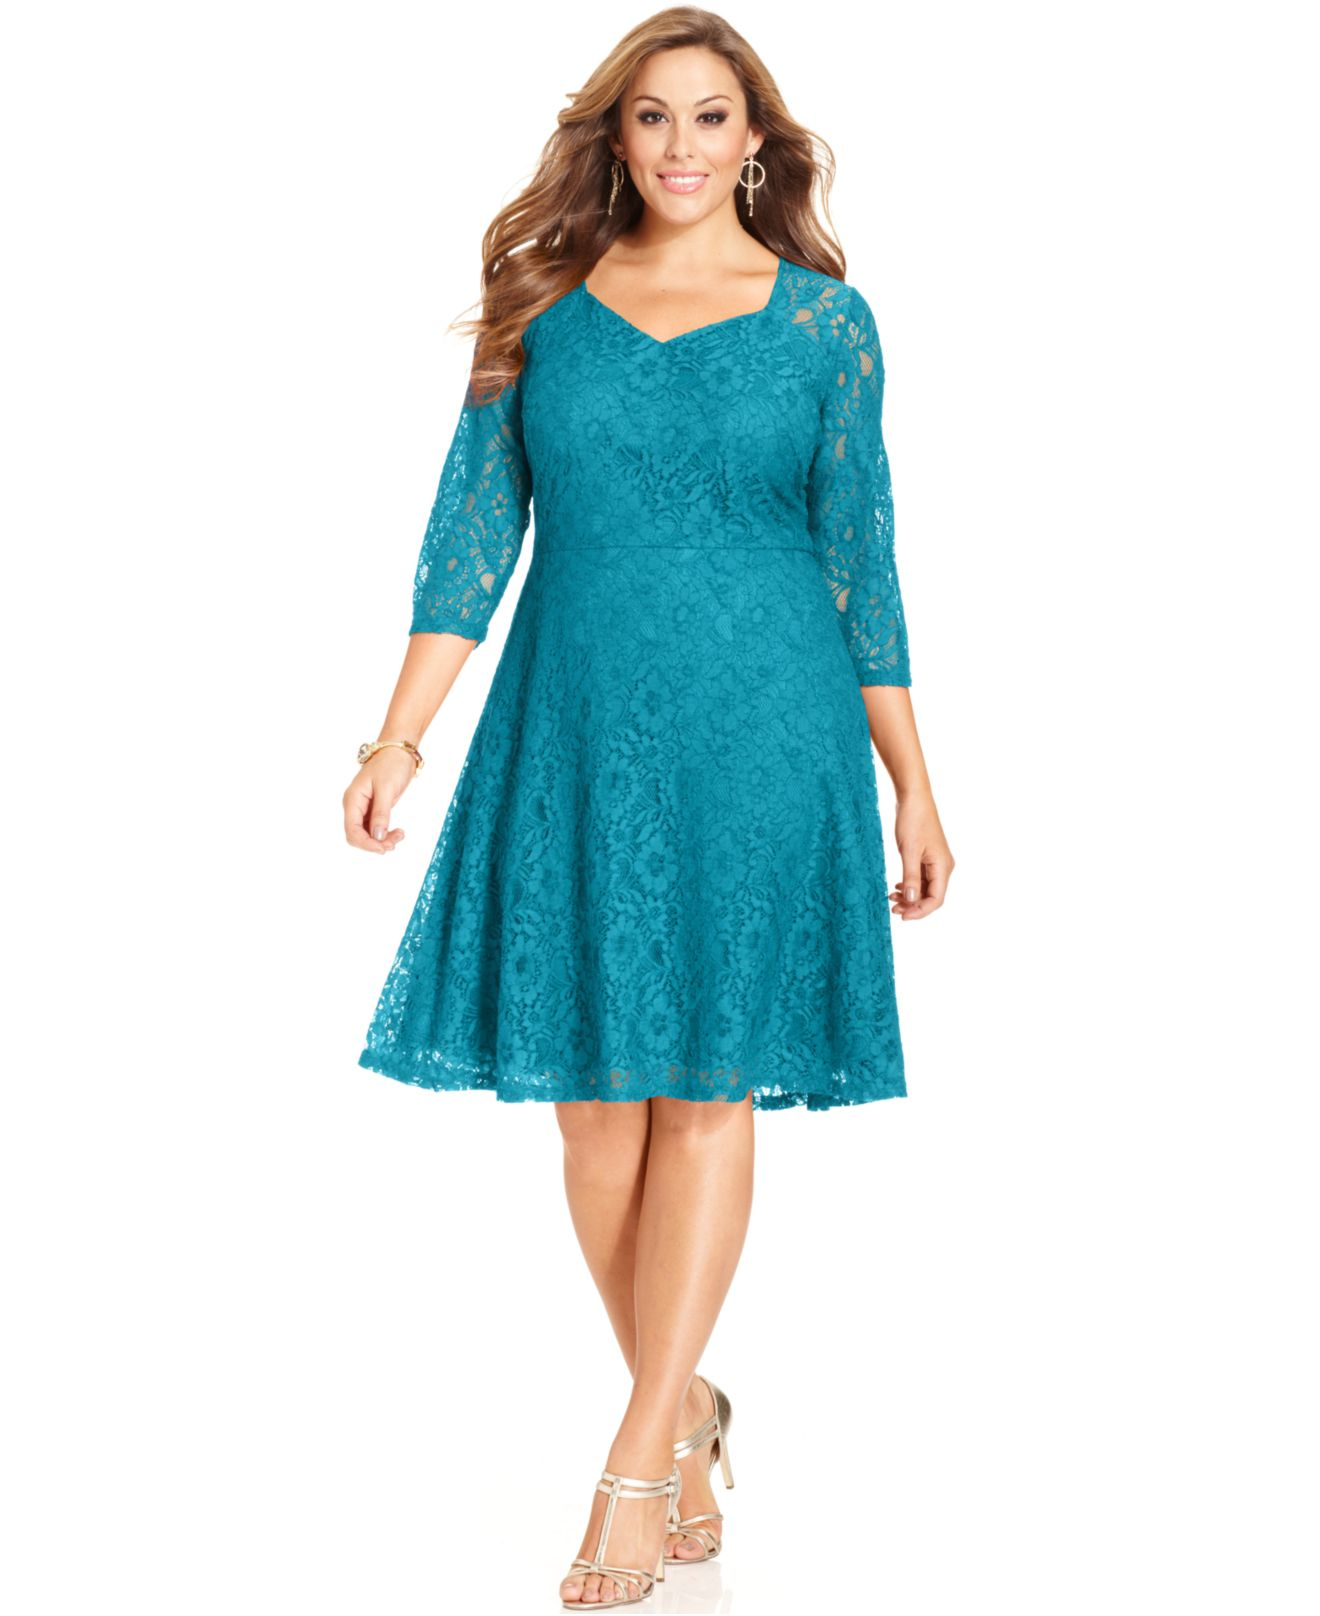 Spense Plus Size Three-quarter-sleeve Lace A-line Dress in Blue - Lyst